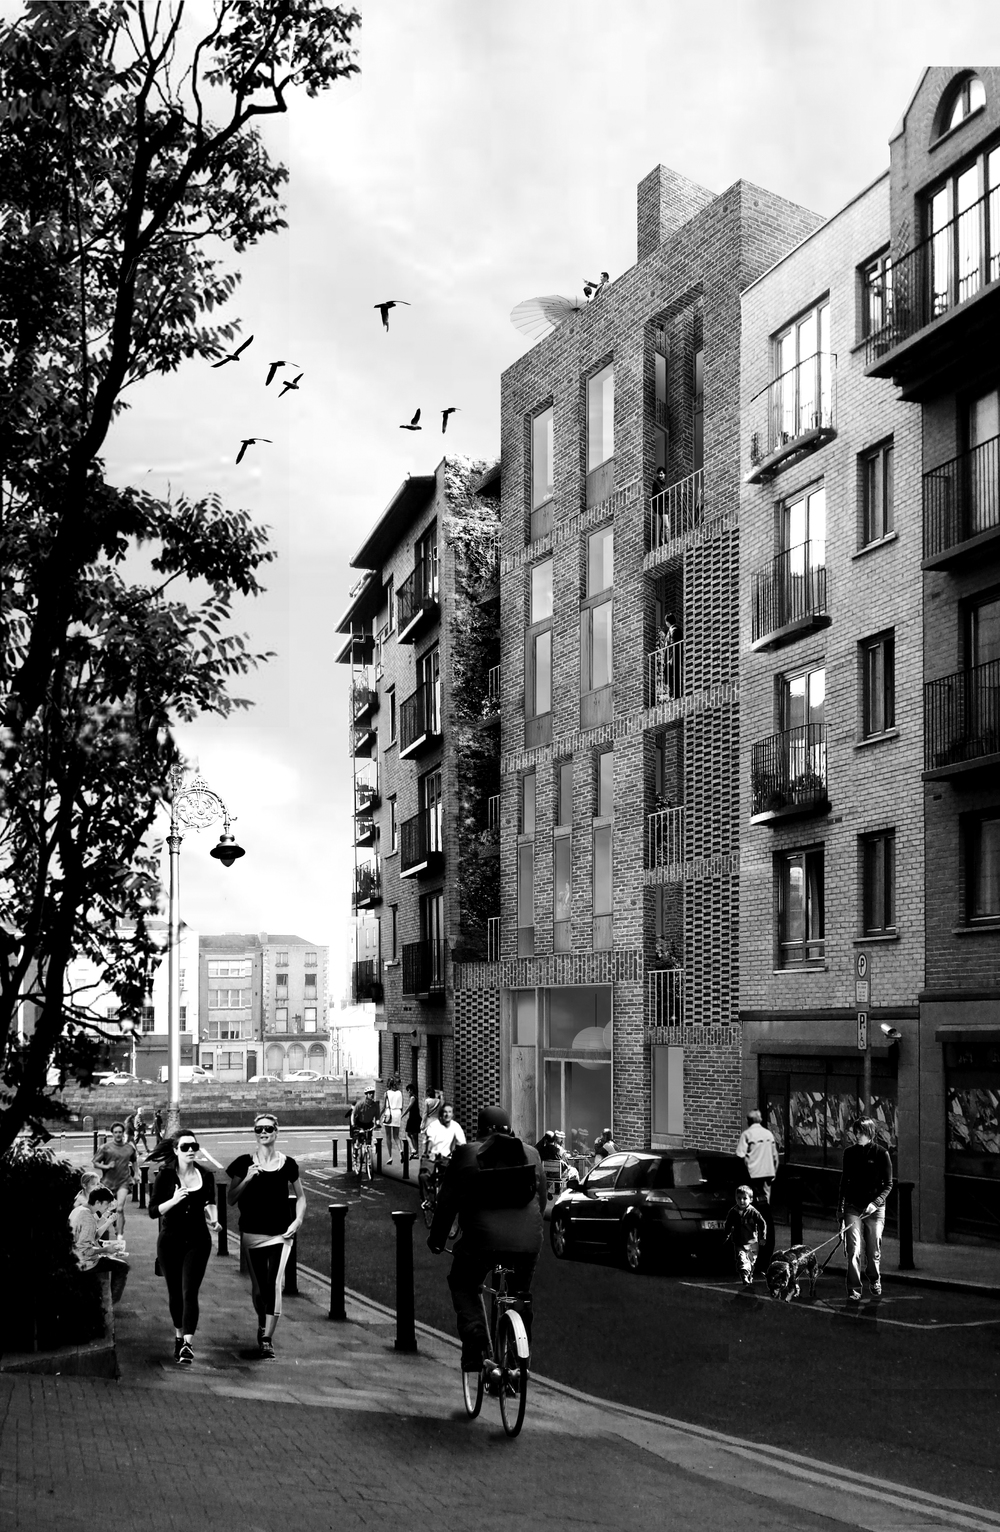 In 2012 the opportunity to test Dublin House became a reality when a Dublin City Council owned site on Fishamble Street became earmarked for development.  The two teams were once again called upon to reimagine the co-op development in this location. Over several months the design, model and brochure came together to be presented in August 2012.  Dublin House 2.0: Fishamble Street was launched on the 21st July 2014 with an open call for interested groups to make submissions to Dublin City Council.